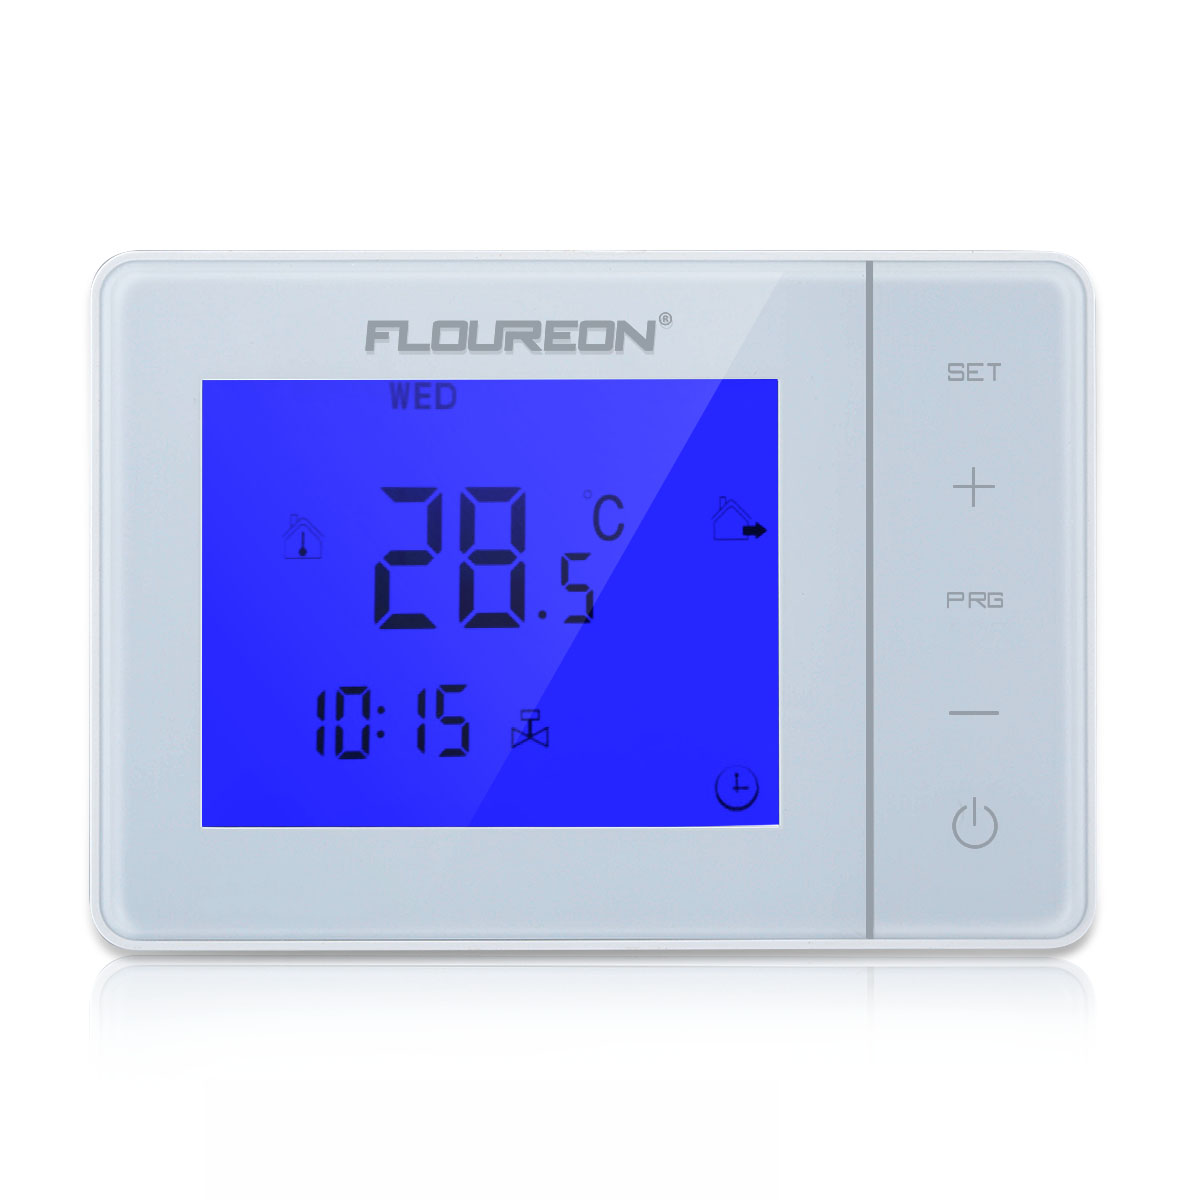 floureon fu bodenheizung raumthermostat digitale elektrische temperaturregler ebay. Black Bedroom Furniture Sets. Home Design Ideas